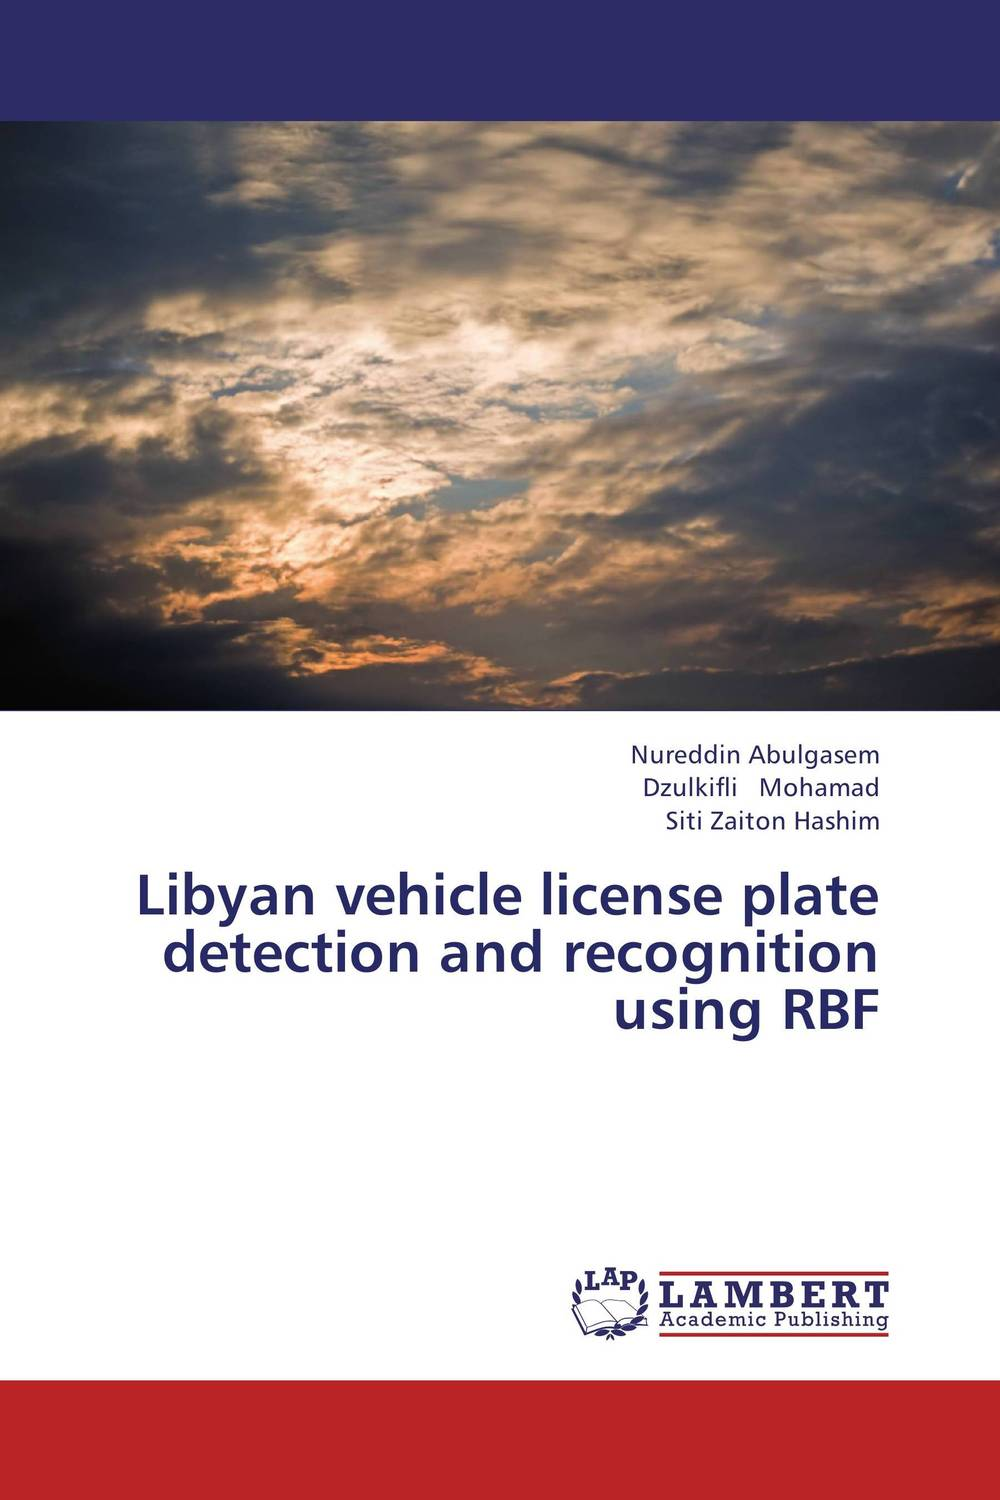 Libyan vehicle license plate detection and recognition using RBF for skyworth 42e7brd booster plate 6917l 0095a kls e420drphf02 is used